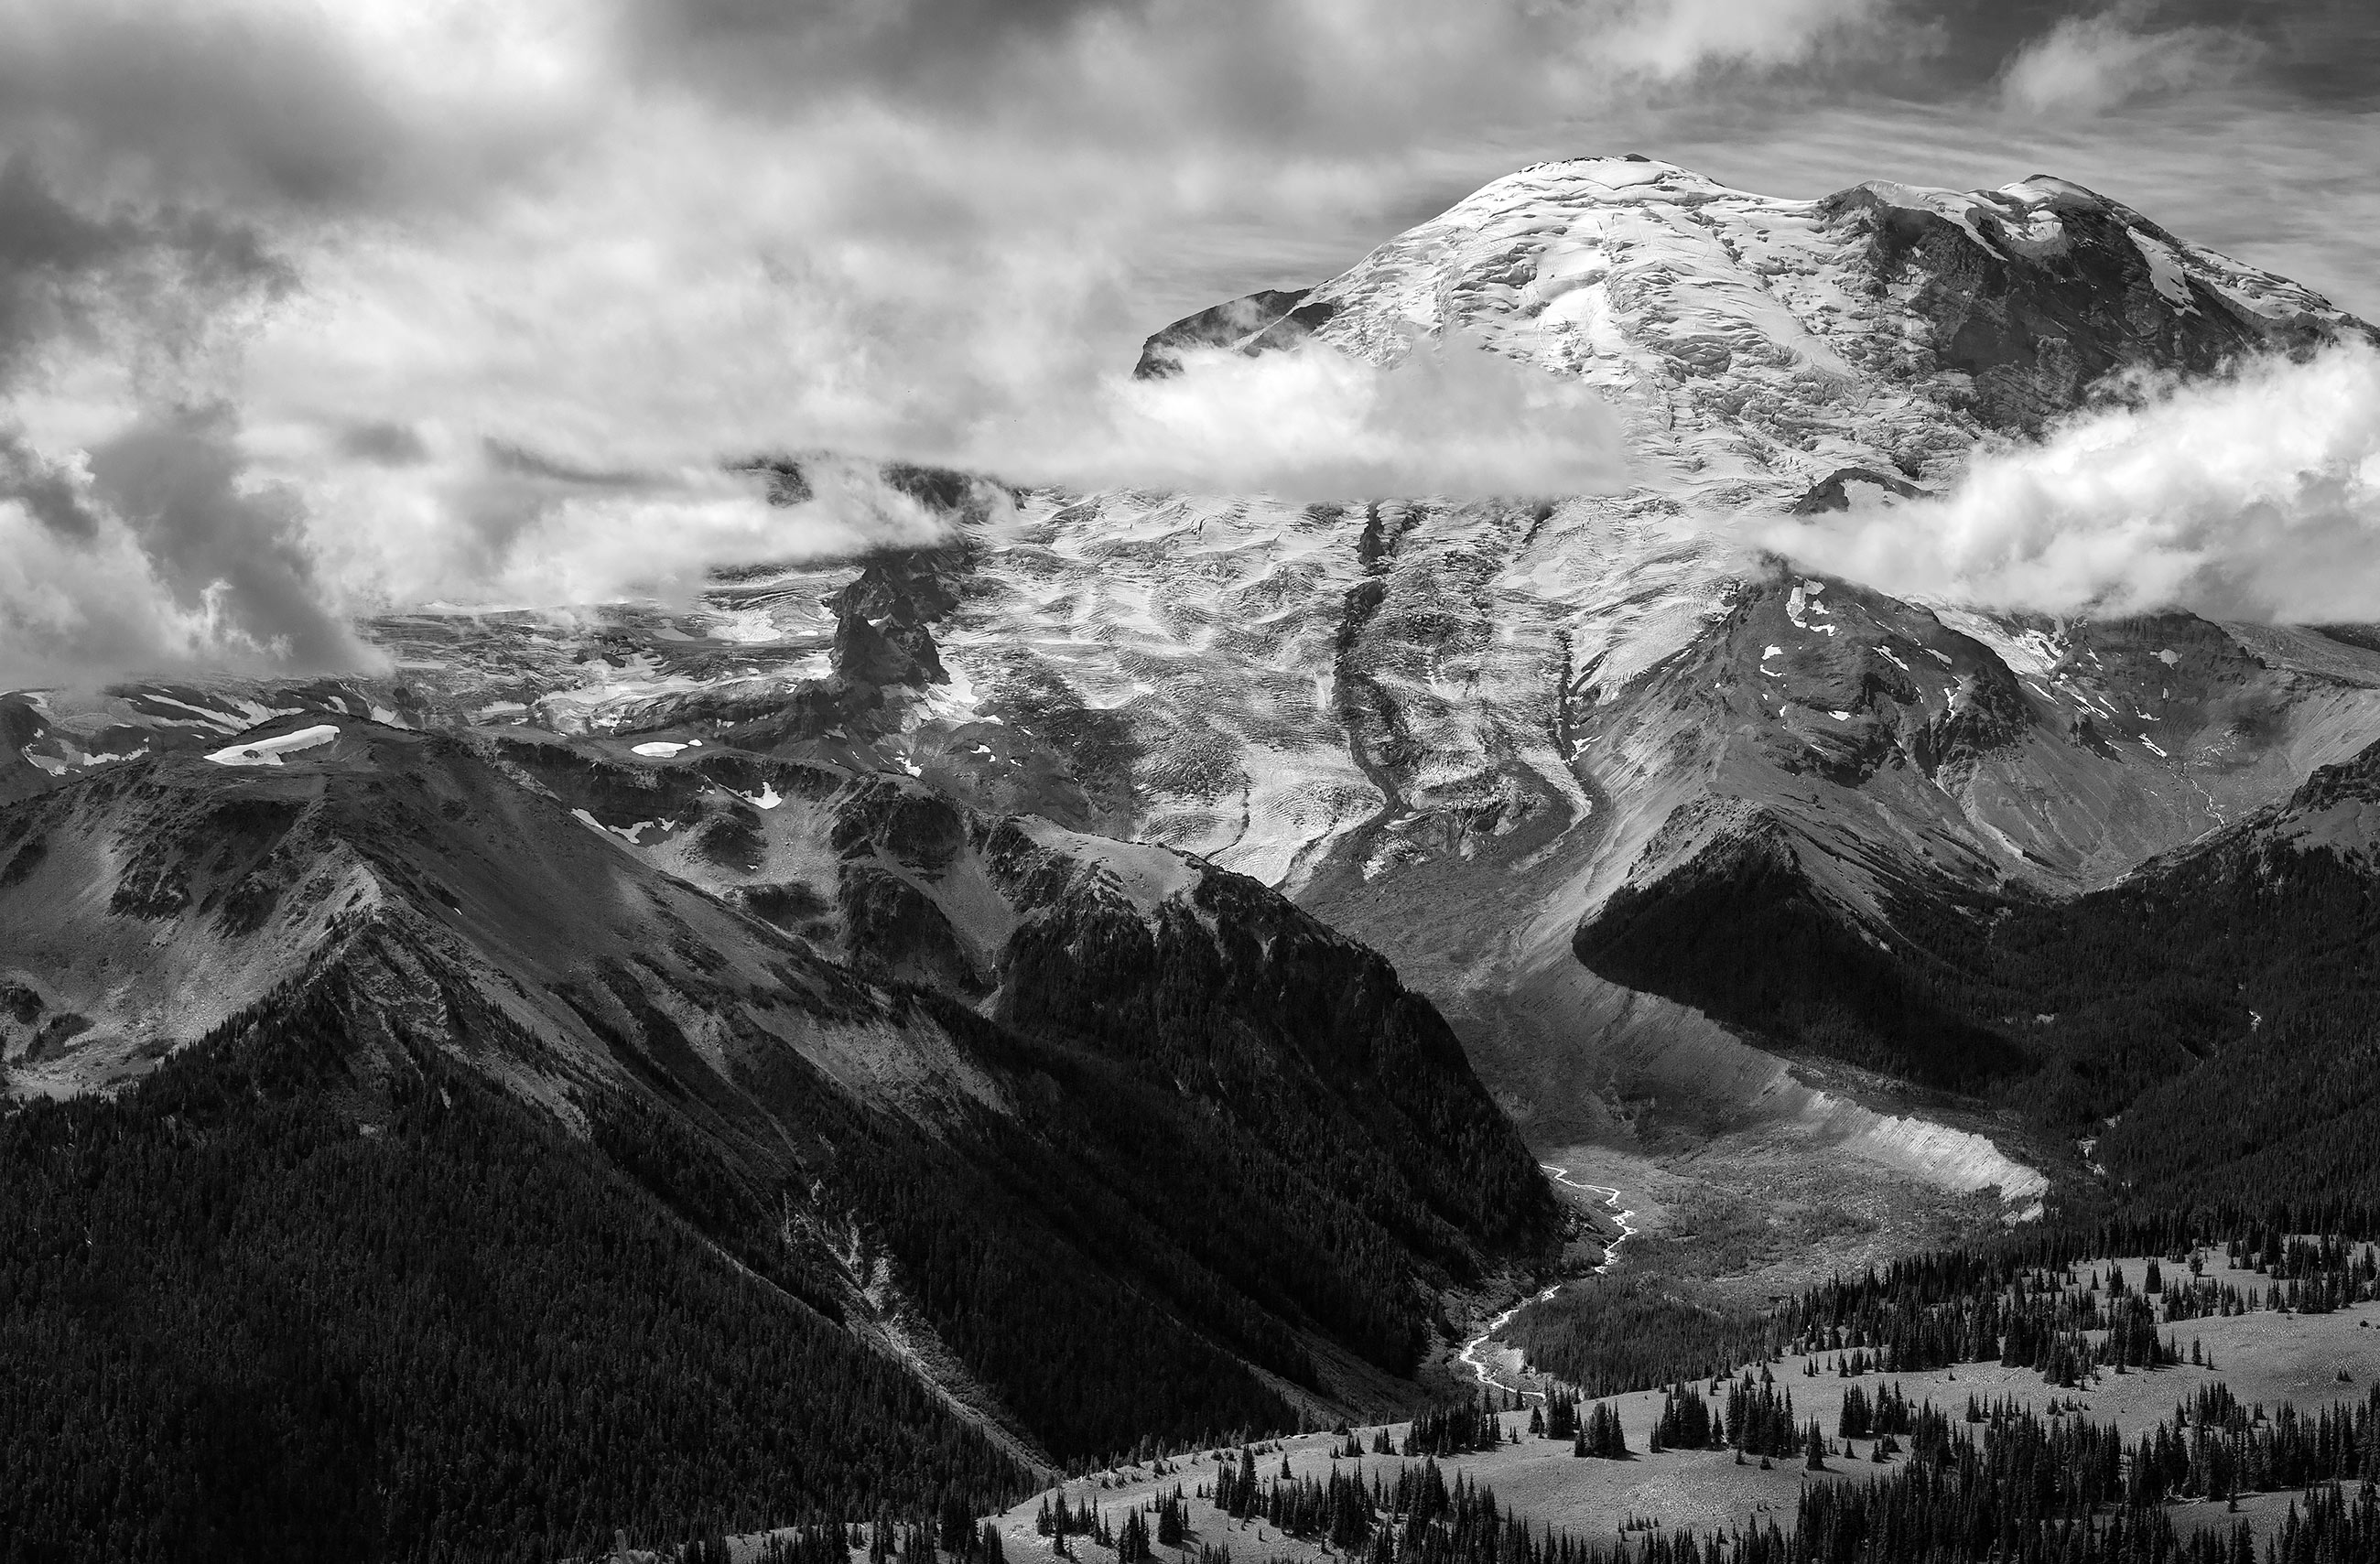 Black and white photo of Mt. Rainier on a cloudy day